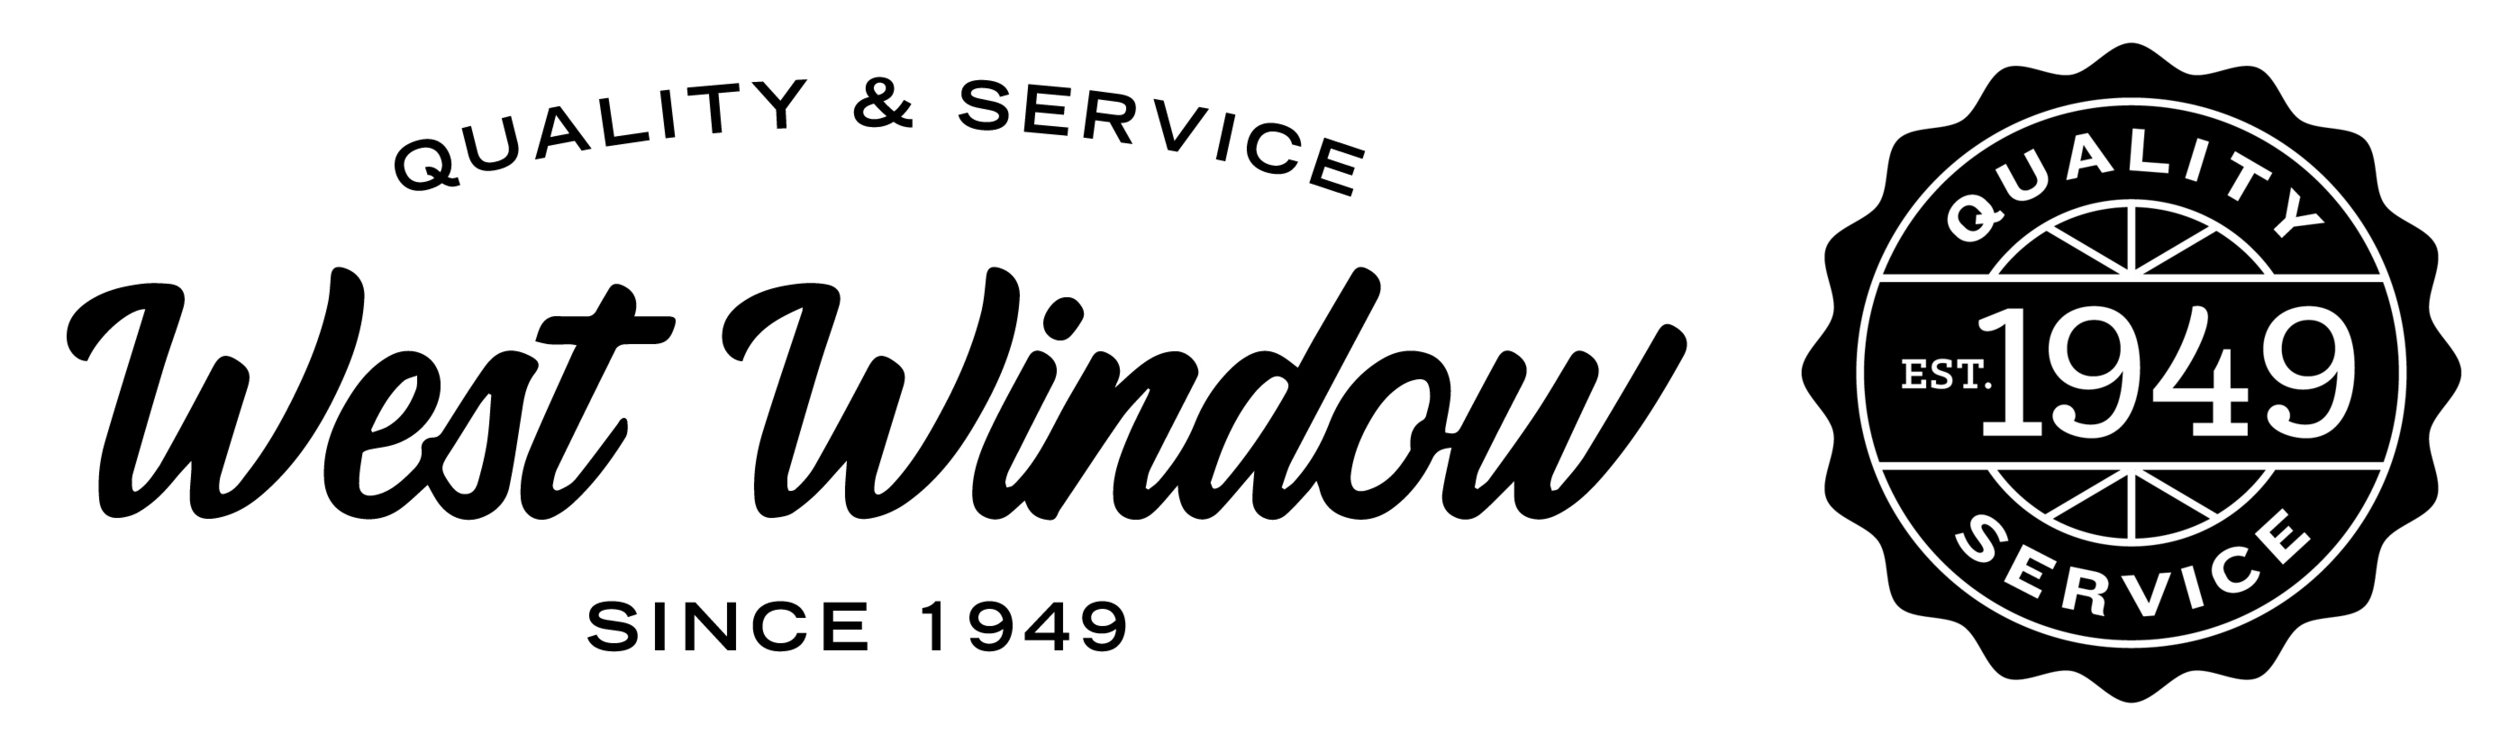 West Window logo, a Diversified Glass vendor